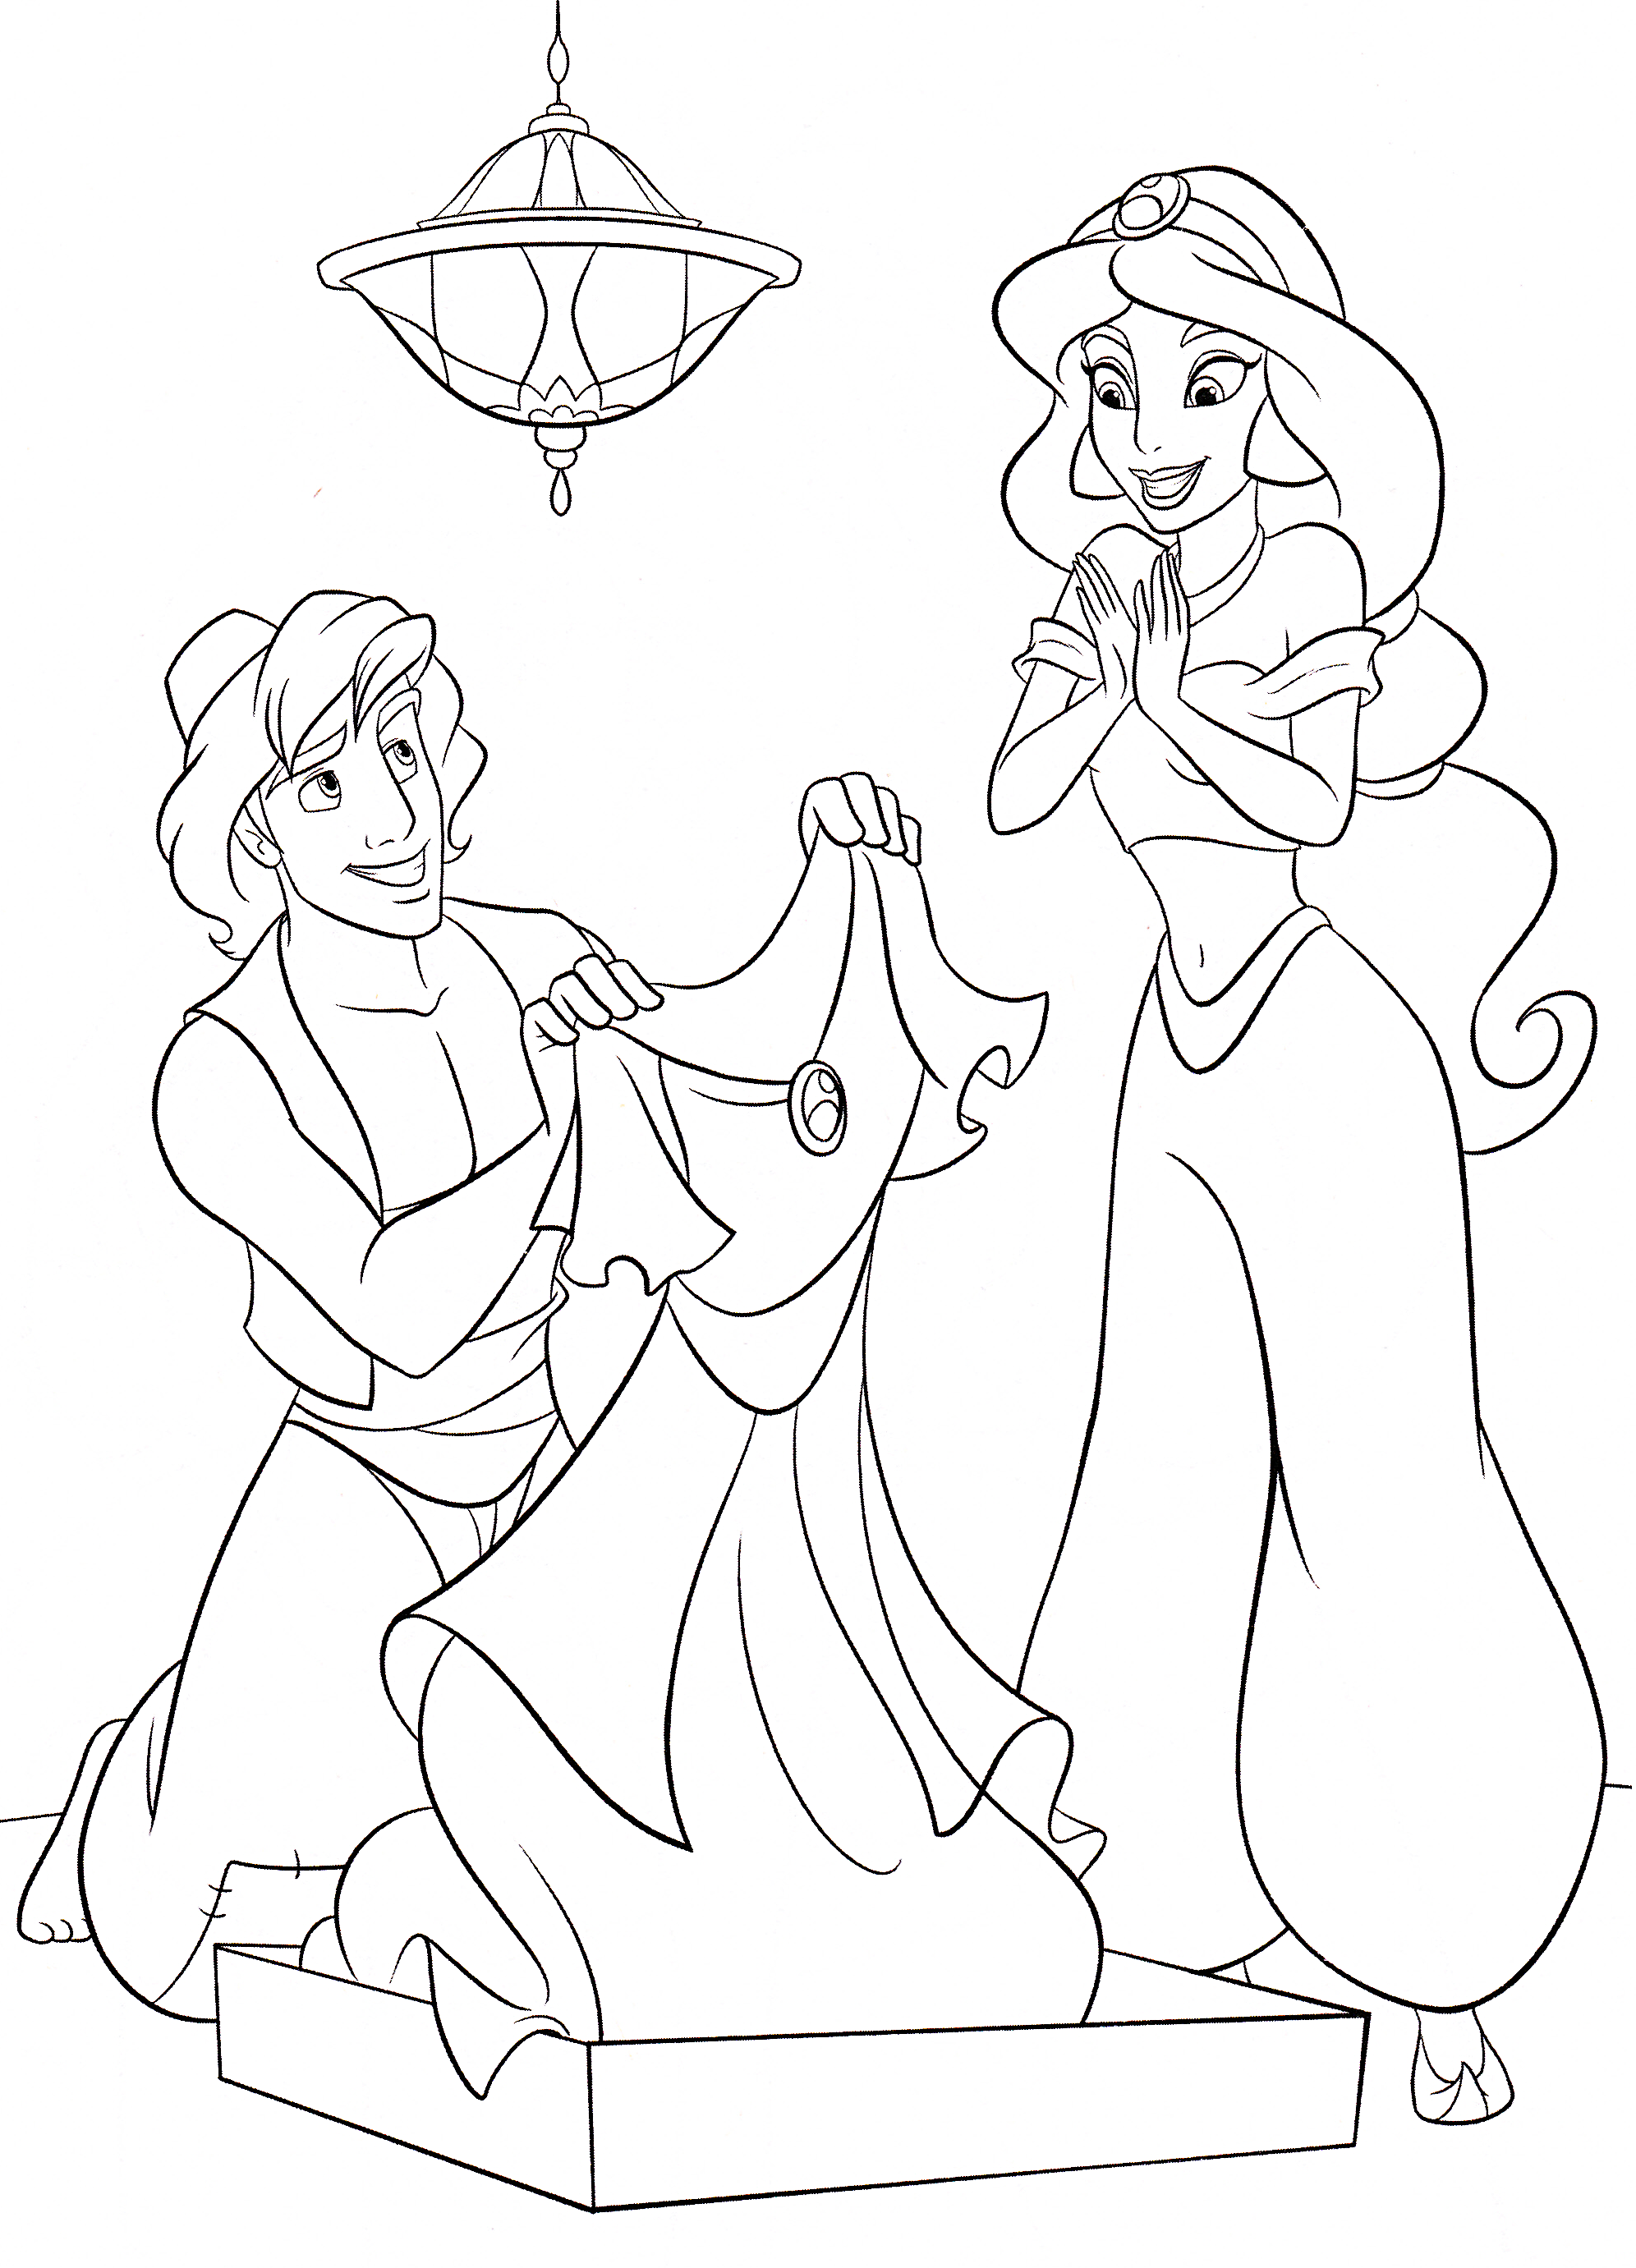 Walt Disney Coloring Pages - Prince Aladdin & Princess ...  Coloring Pages Of Jasmine And Aladdin